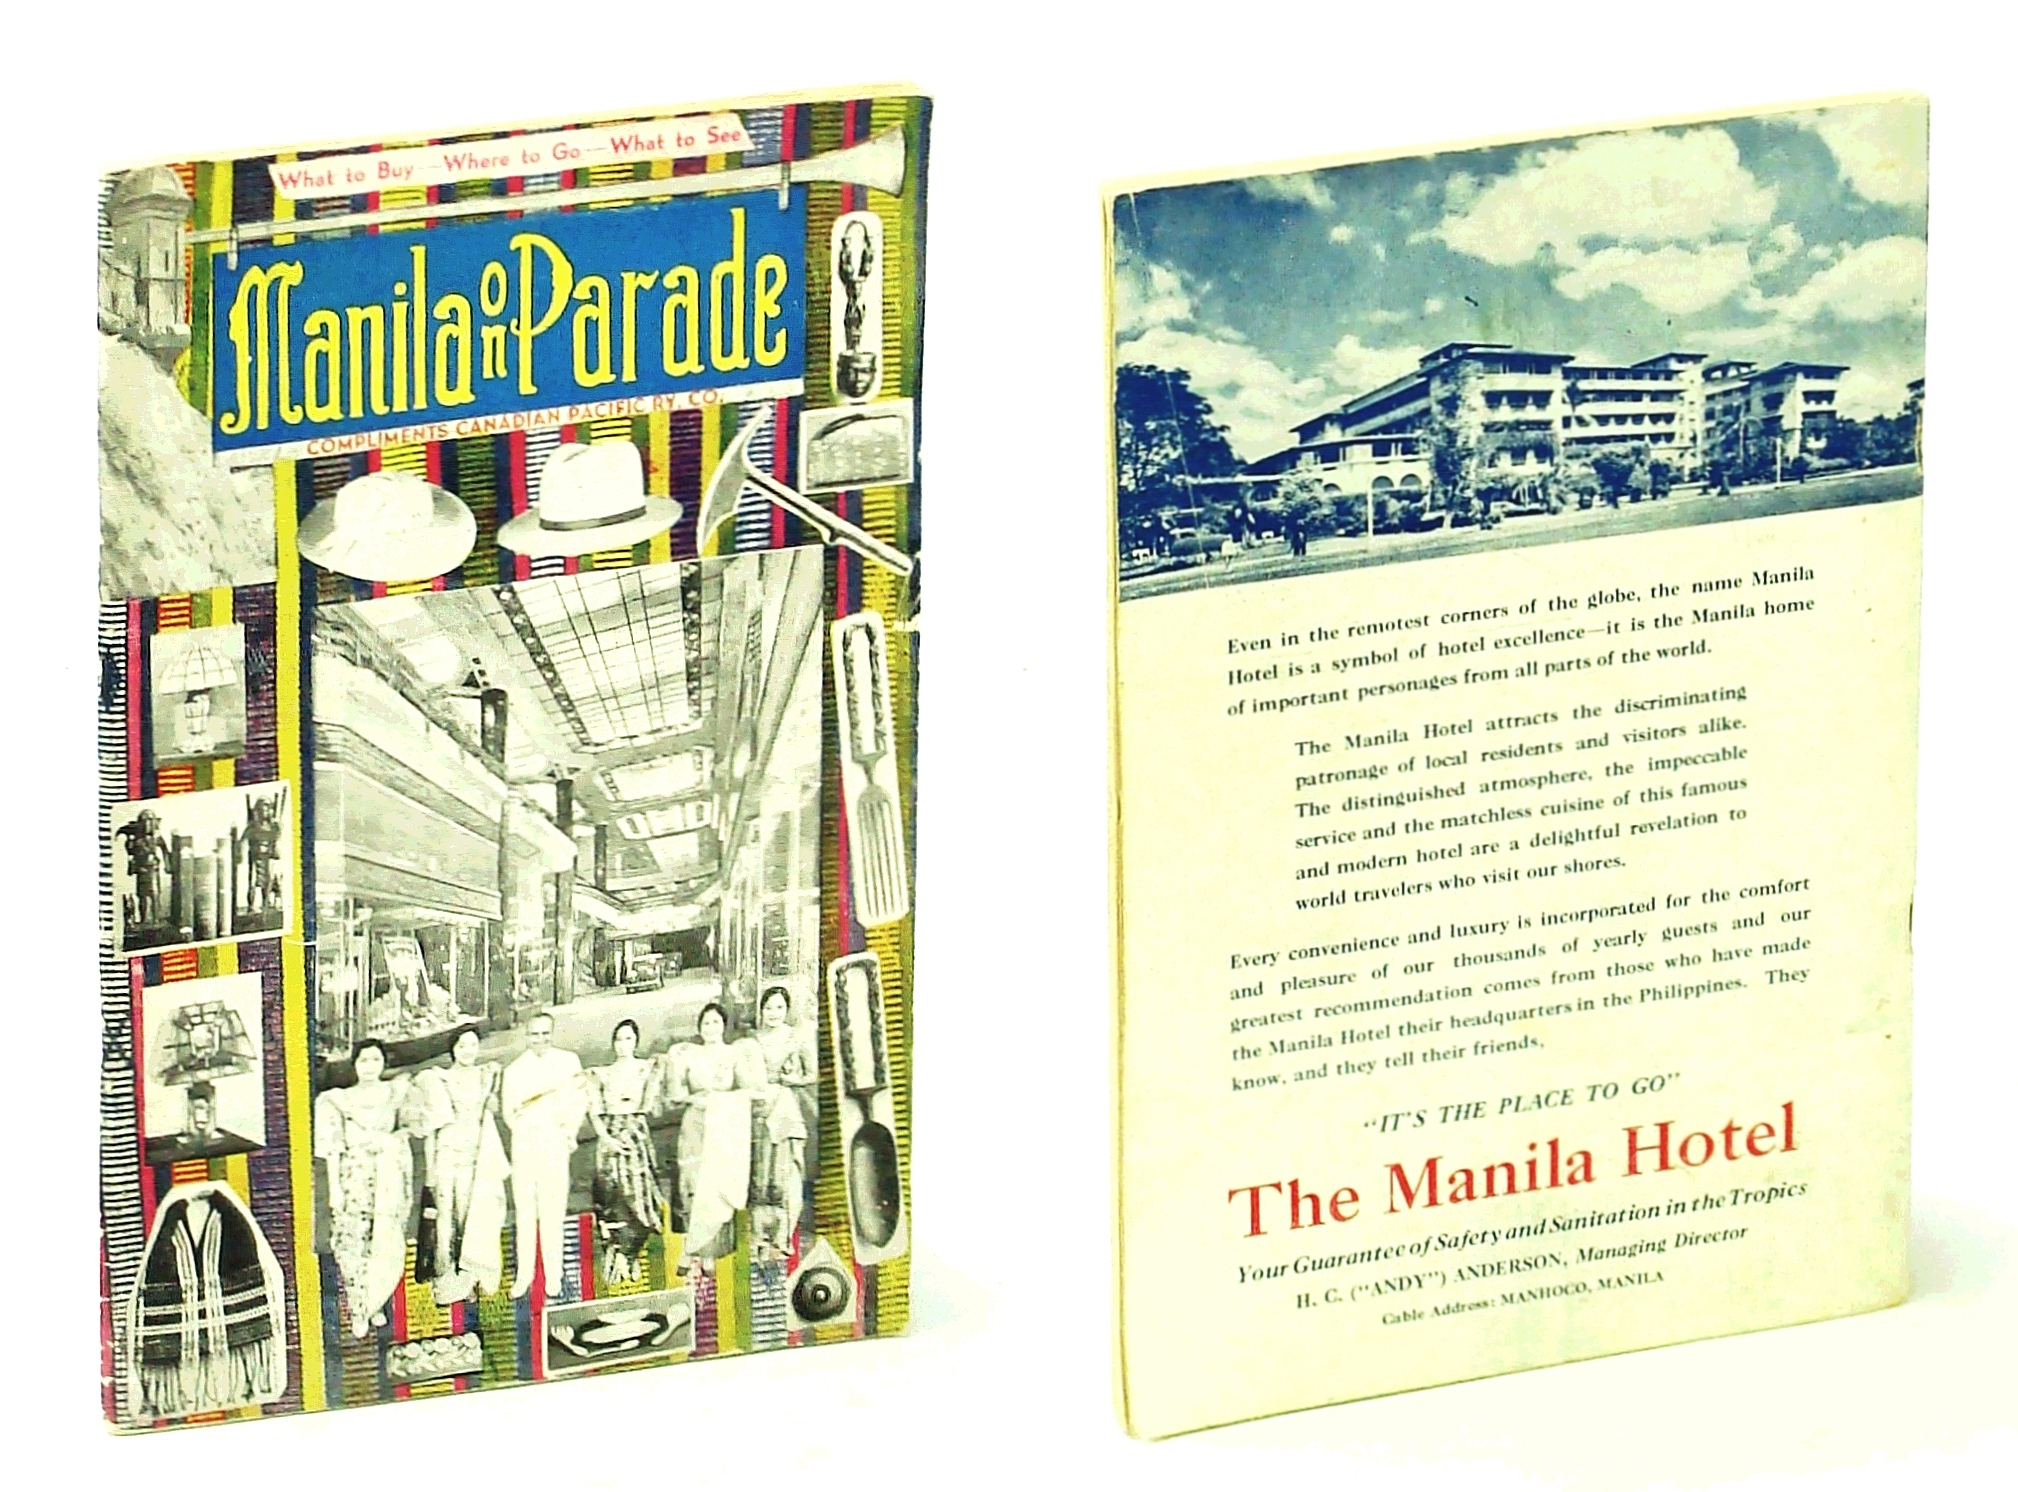 Image for Manila on Parade - What to Buy, Where to Go, What to See: Compliments of the Canadian Pacific Ry. Co.